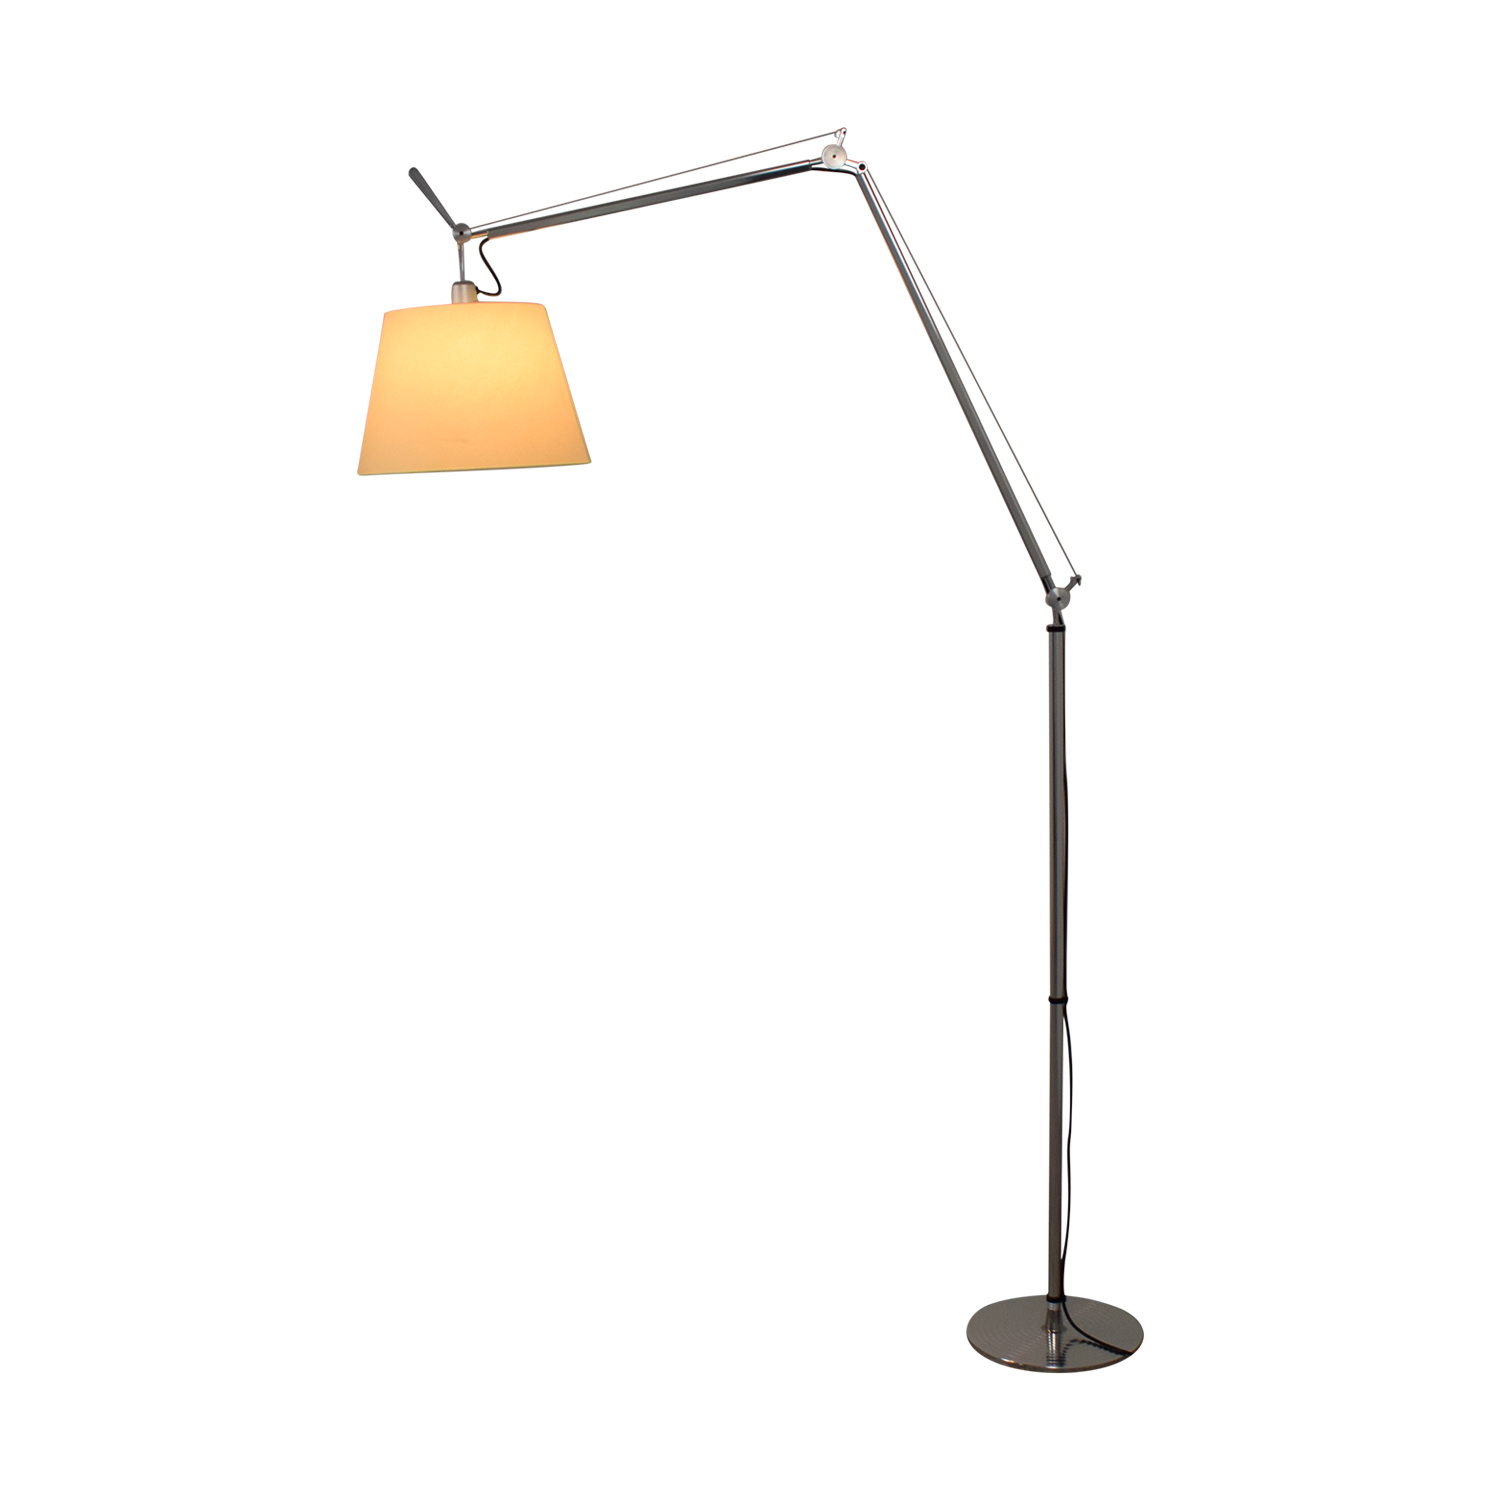 buy Design Within Reach Tolomeo Arched Mega Floor Lamp Design Within Reach Lamps